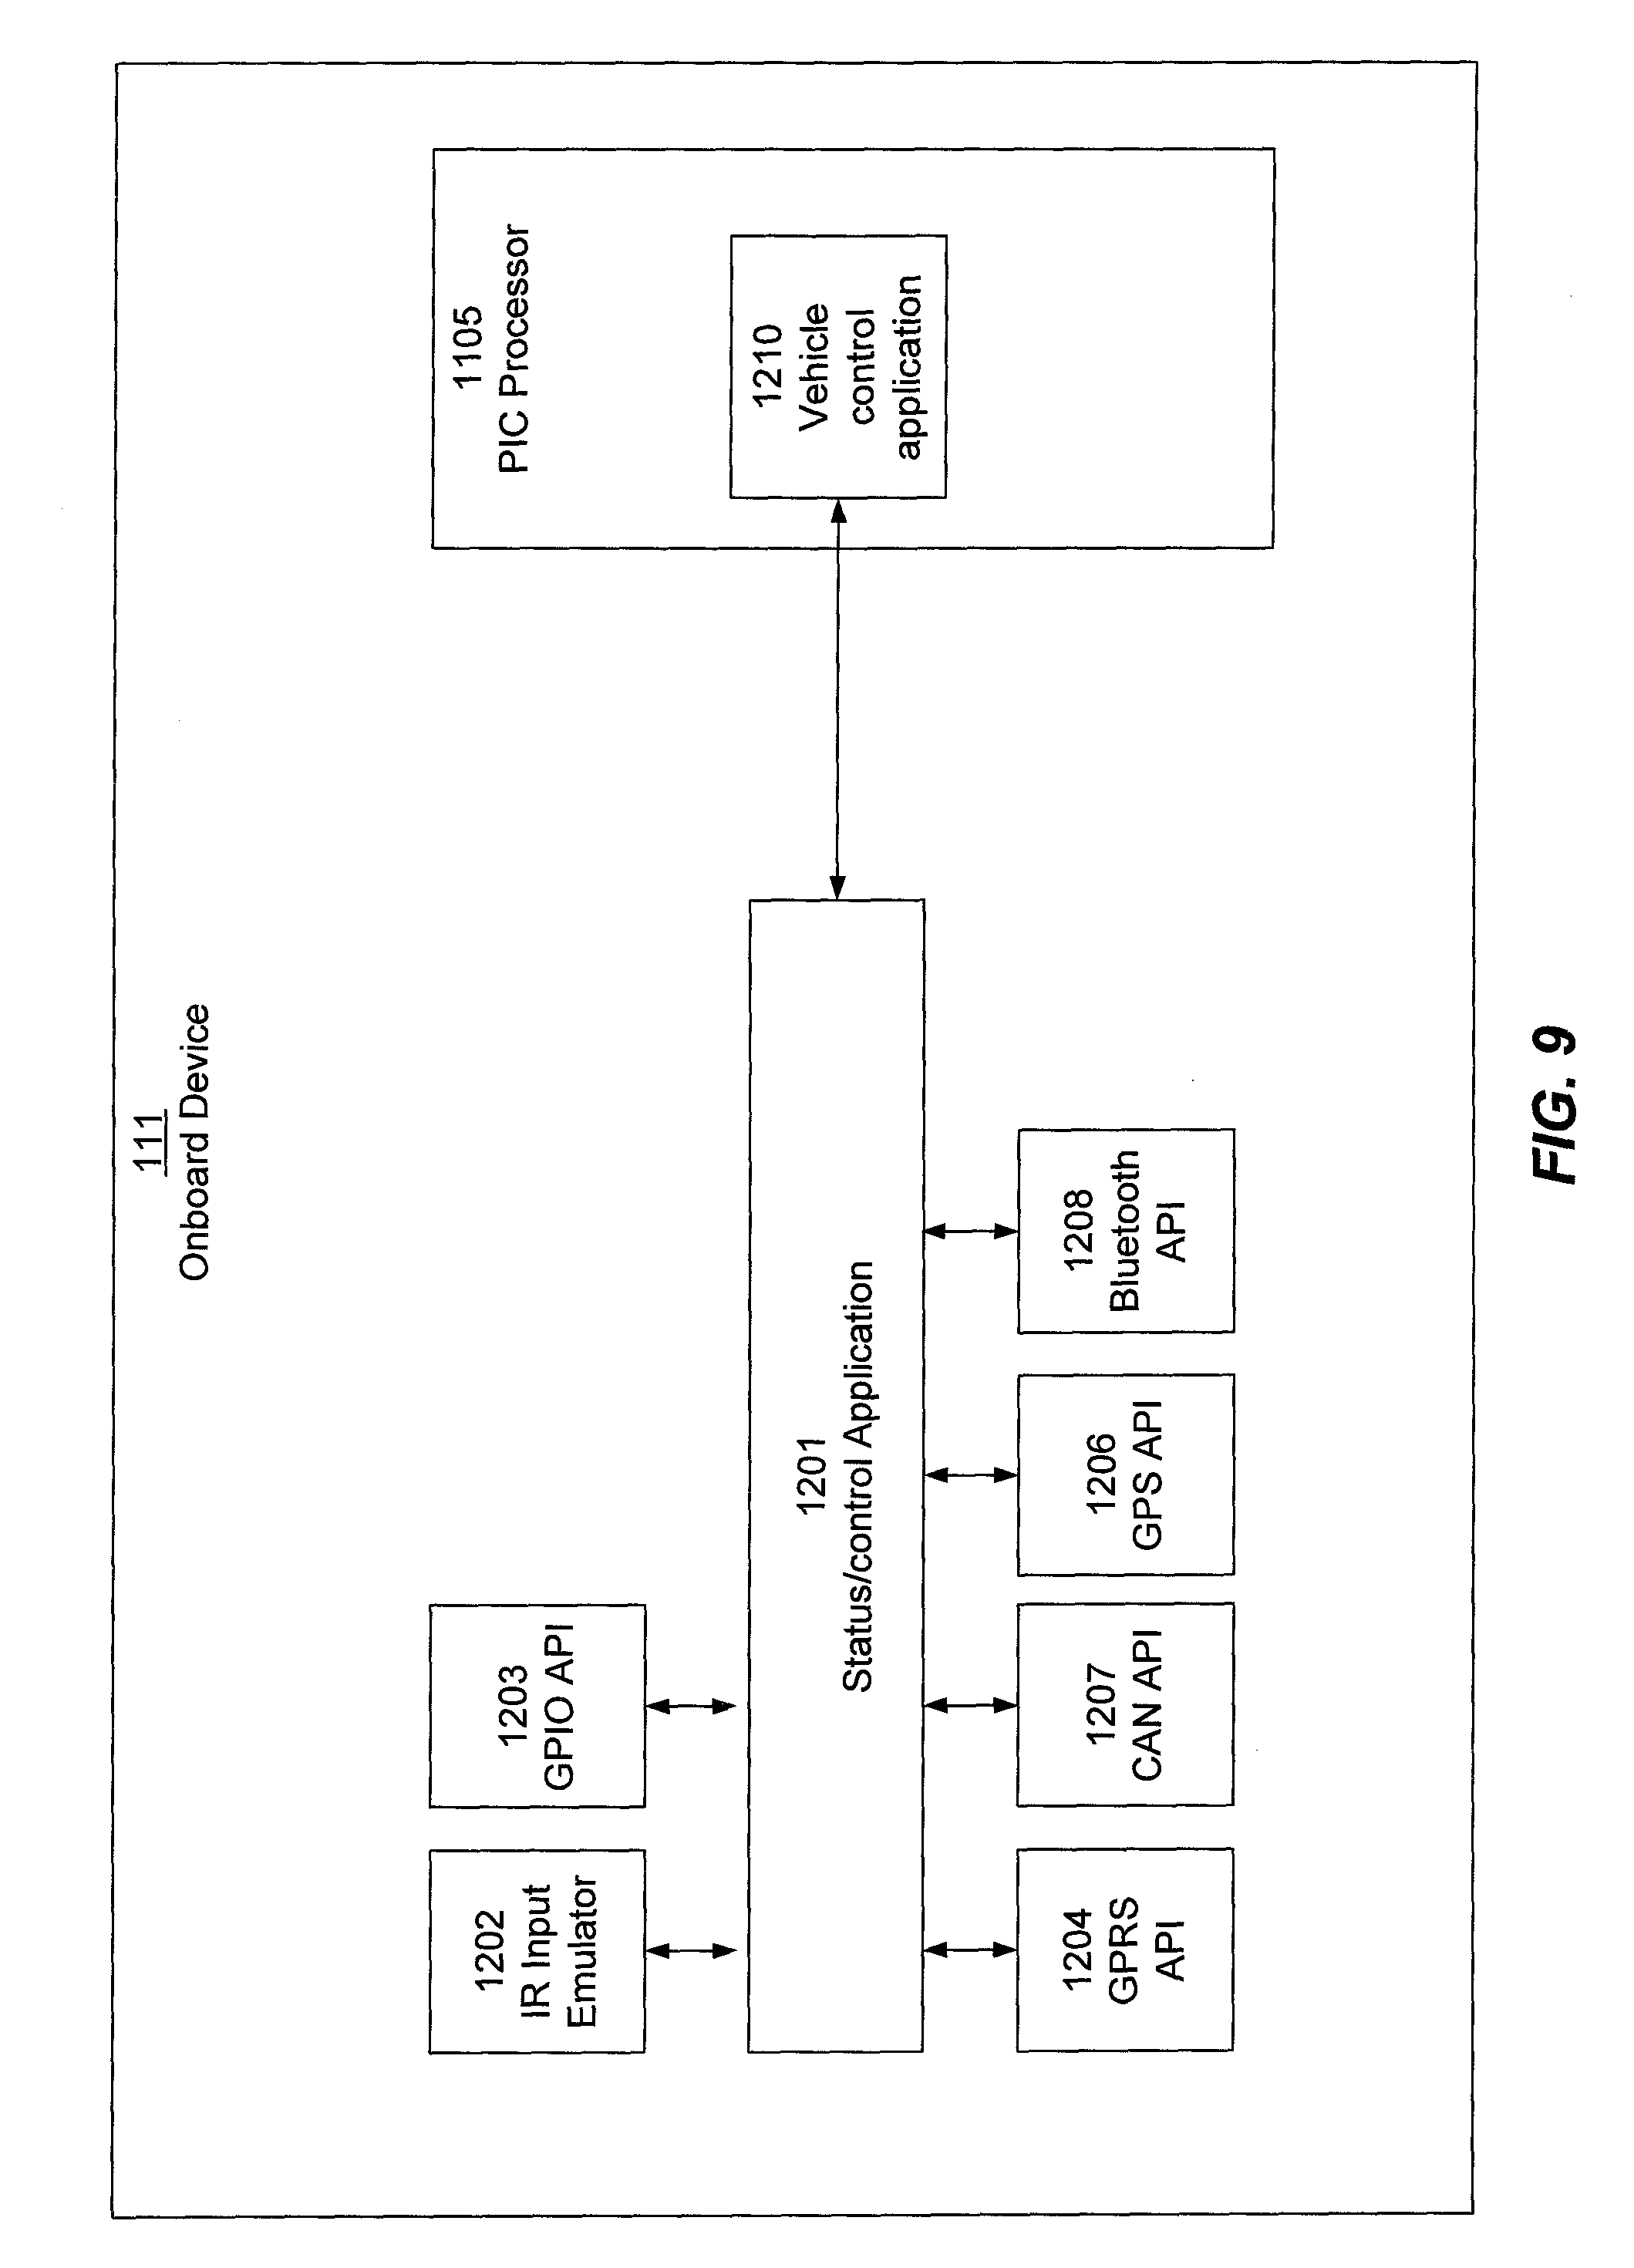 US20070185728A1 20070809 D00009 patent us20070185728 starter interrupt device incorporating loan plus gps wiring diagram at crackthecode.co